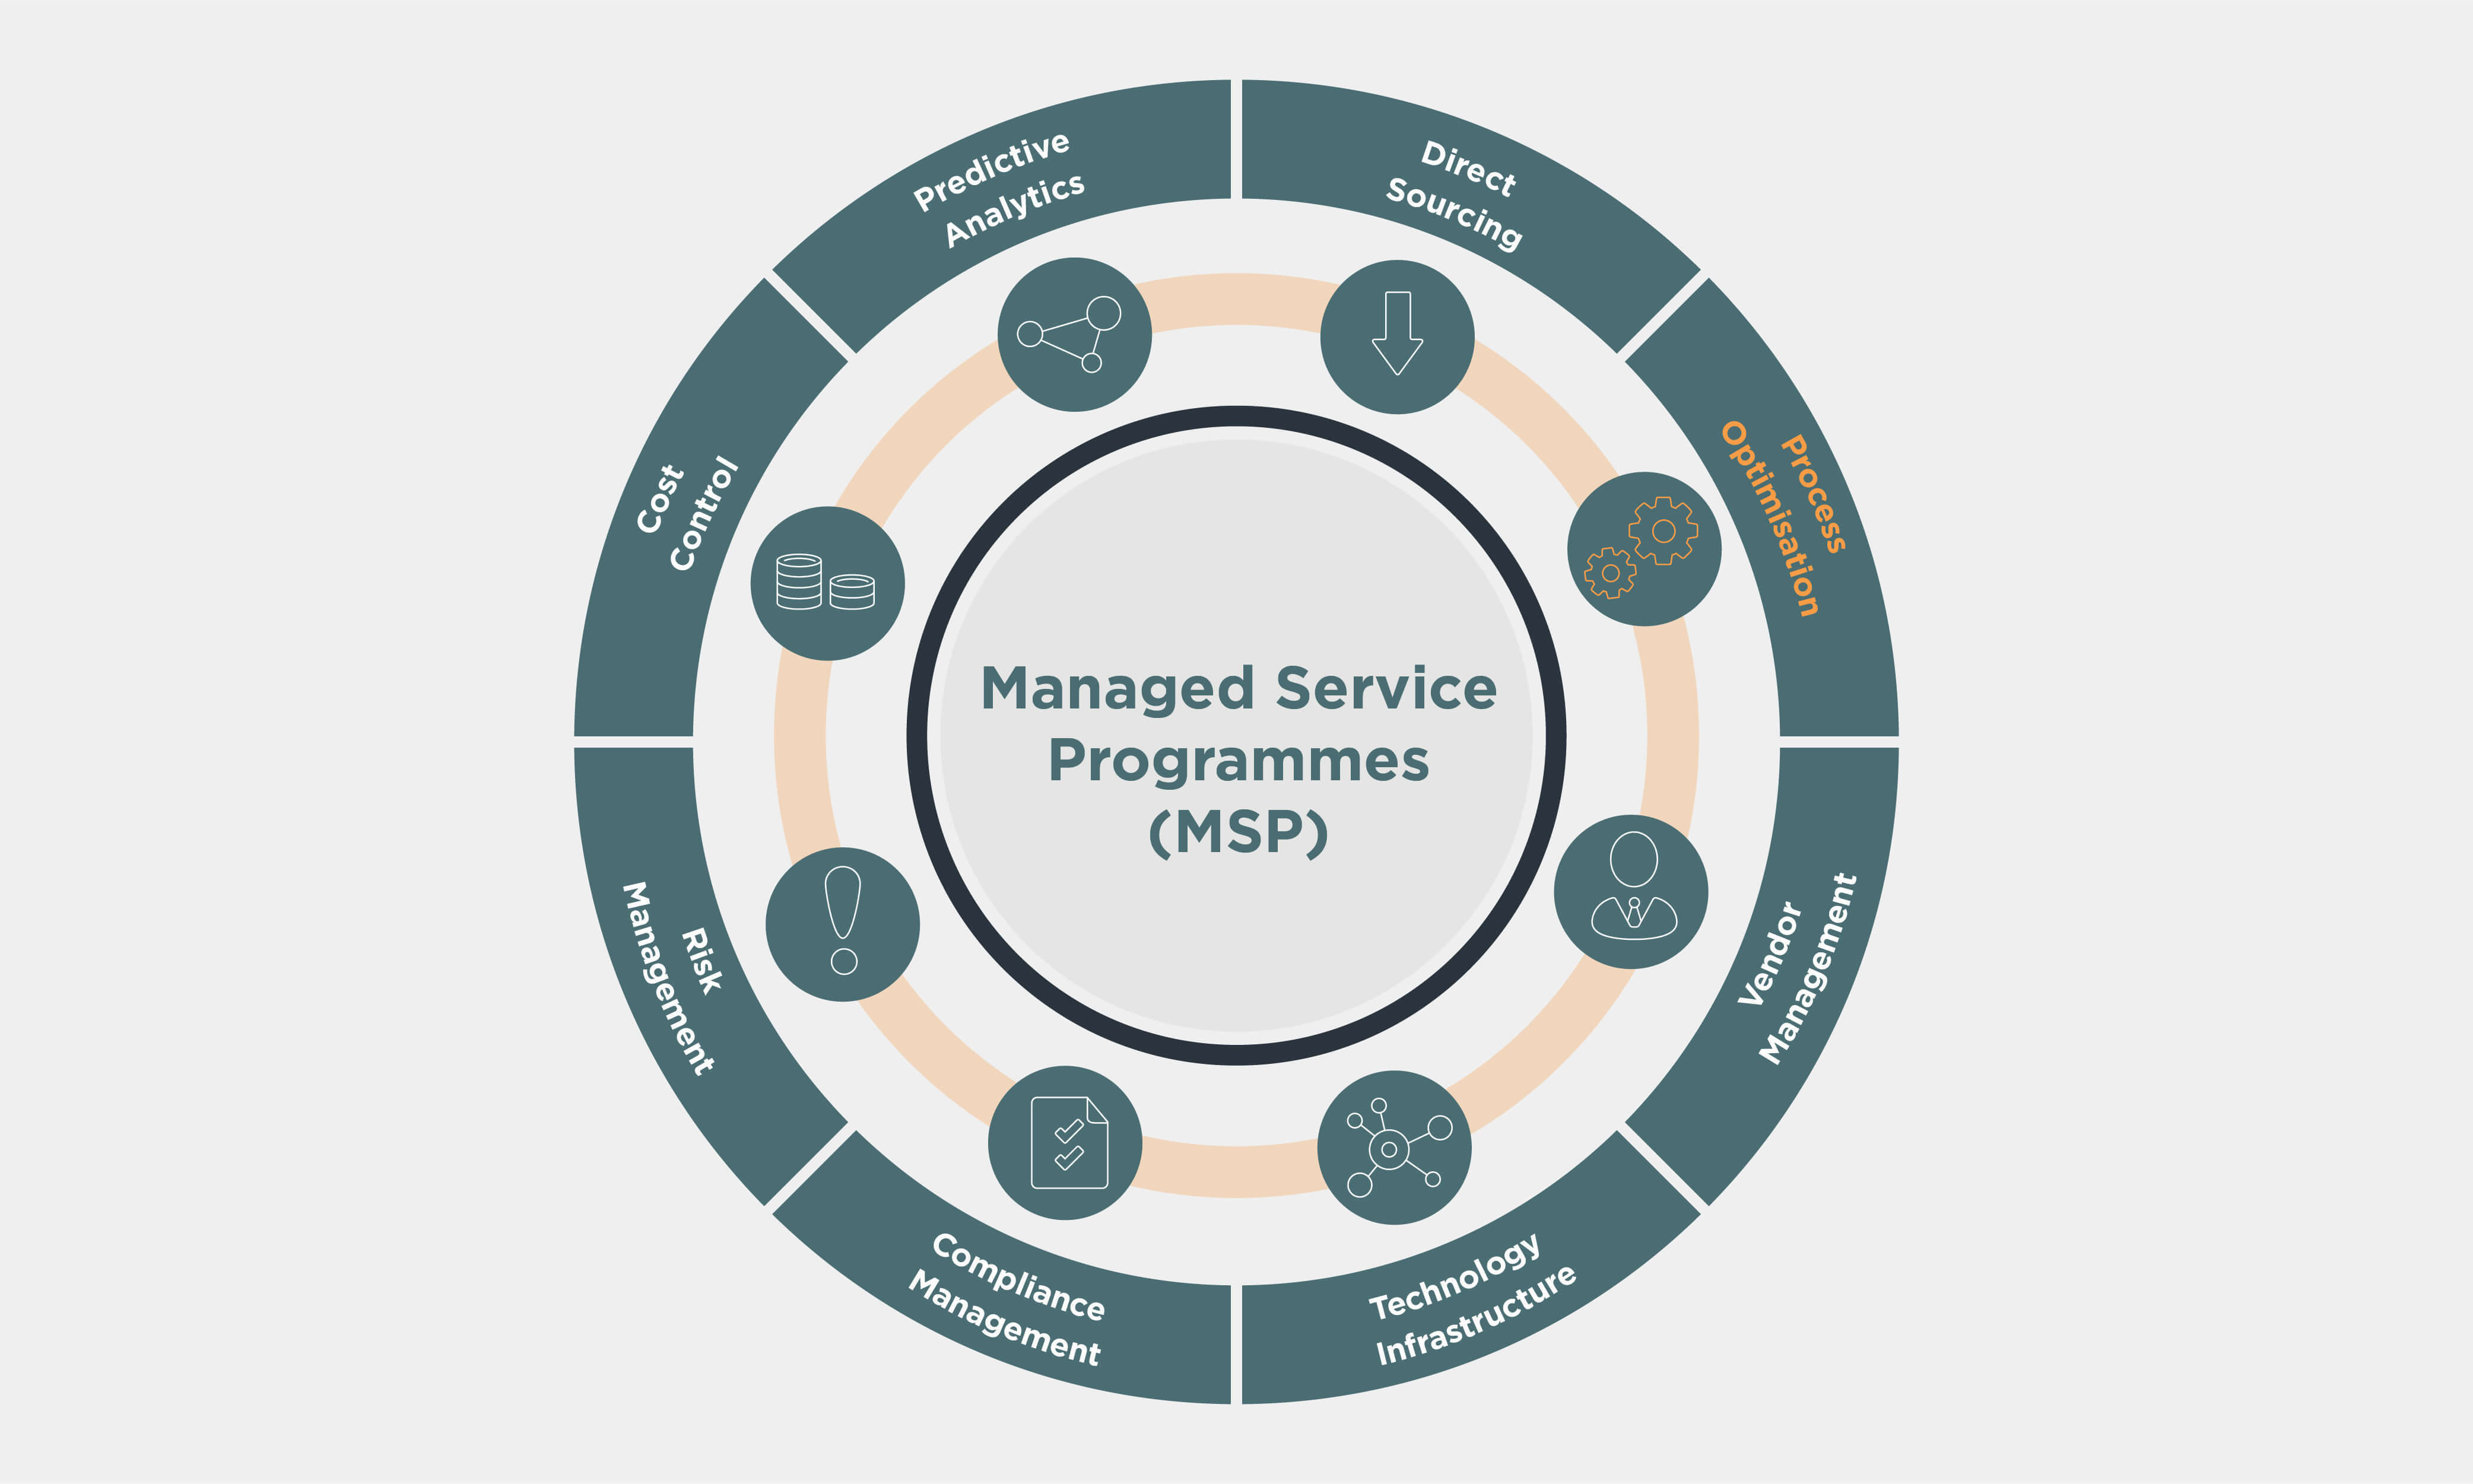 Managed Service Programmes (MSP) wheel with Process Optimisation highlighted in orange